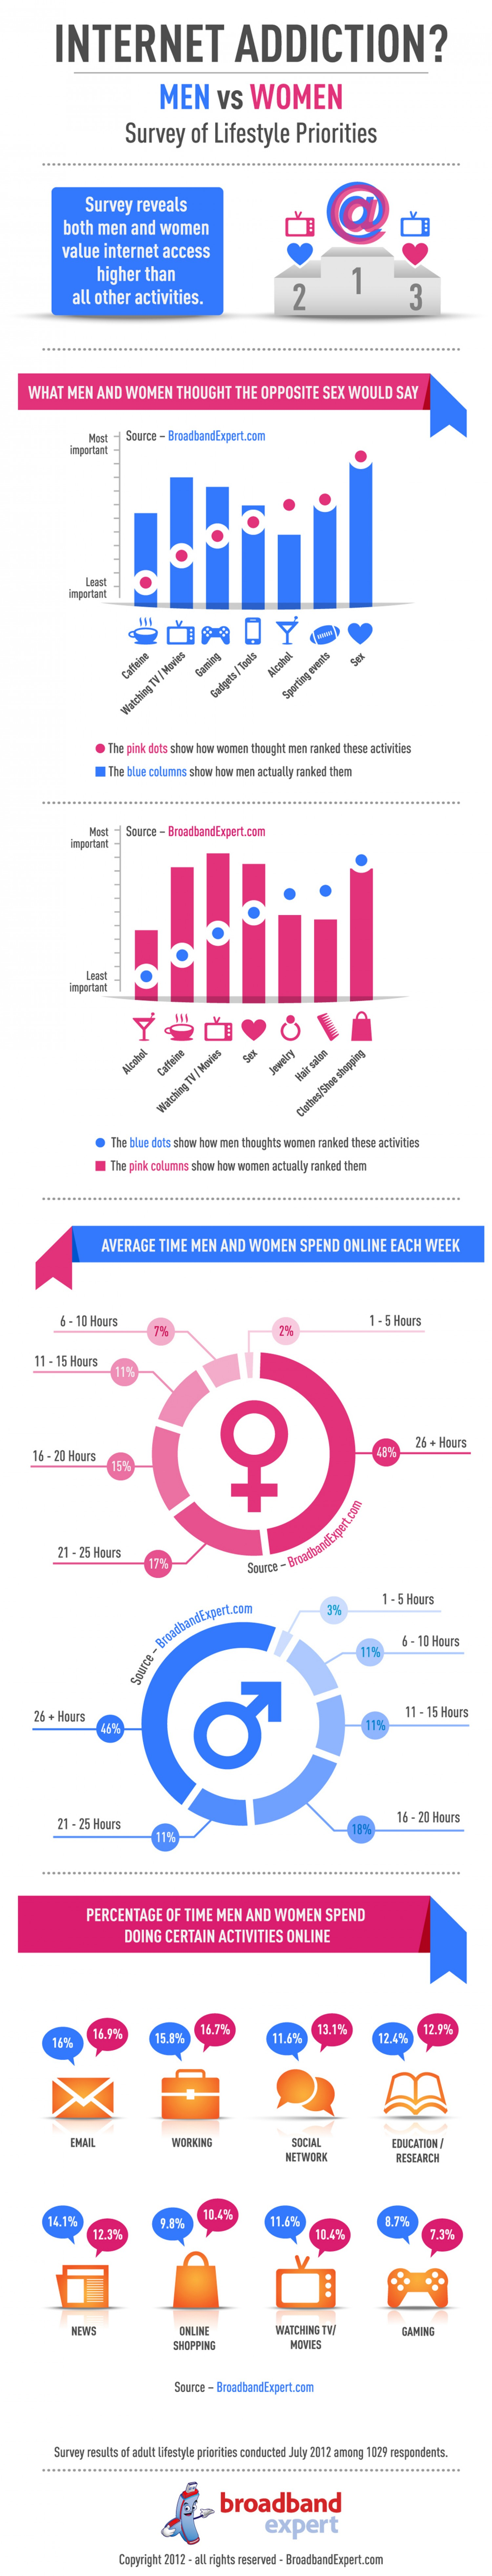 12. Internet addiction men vs. women